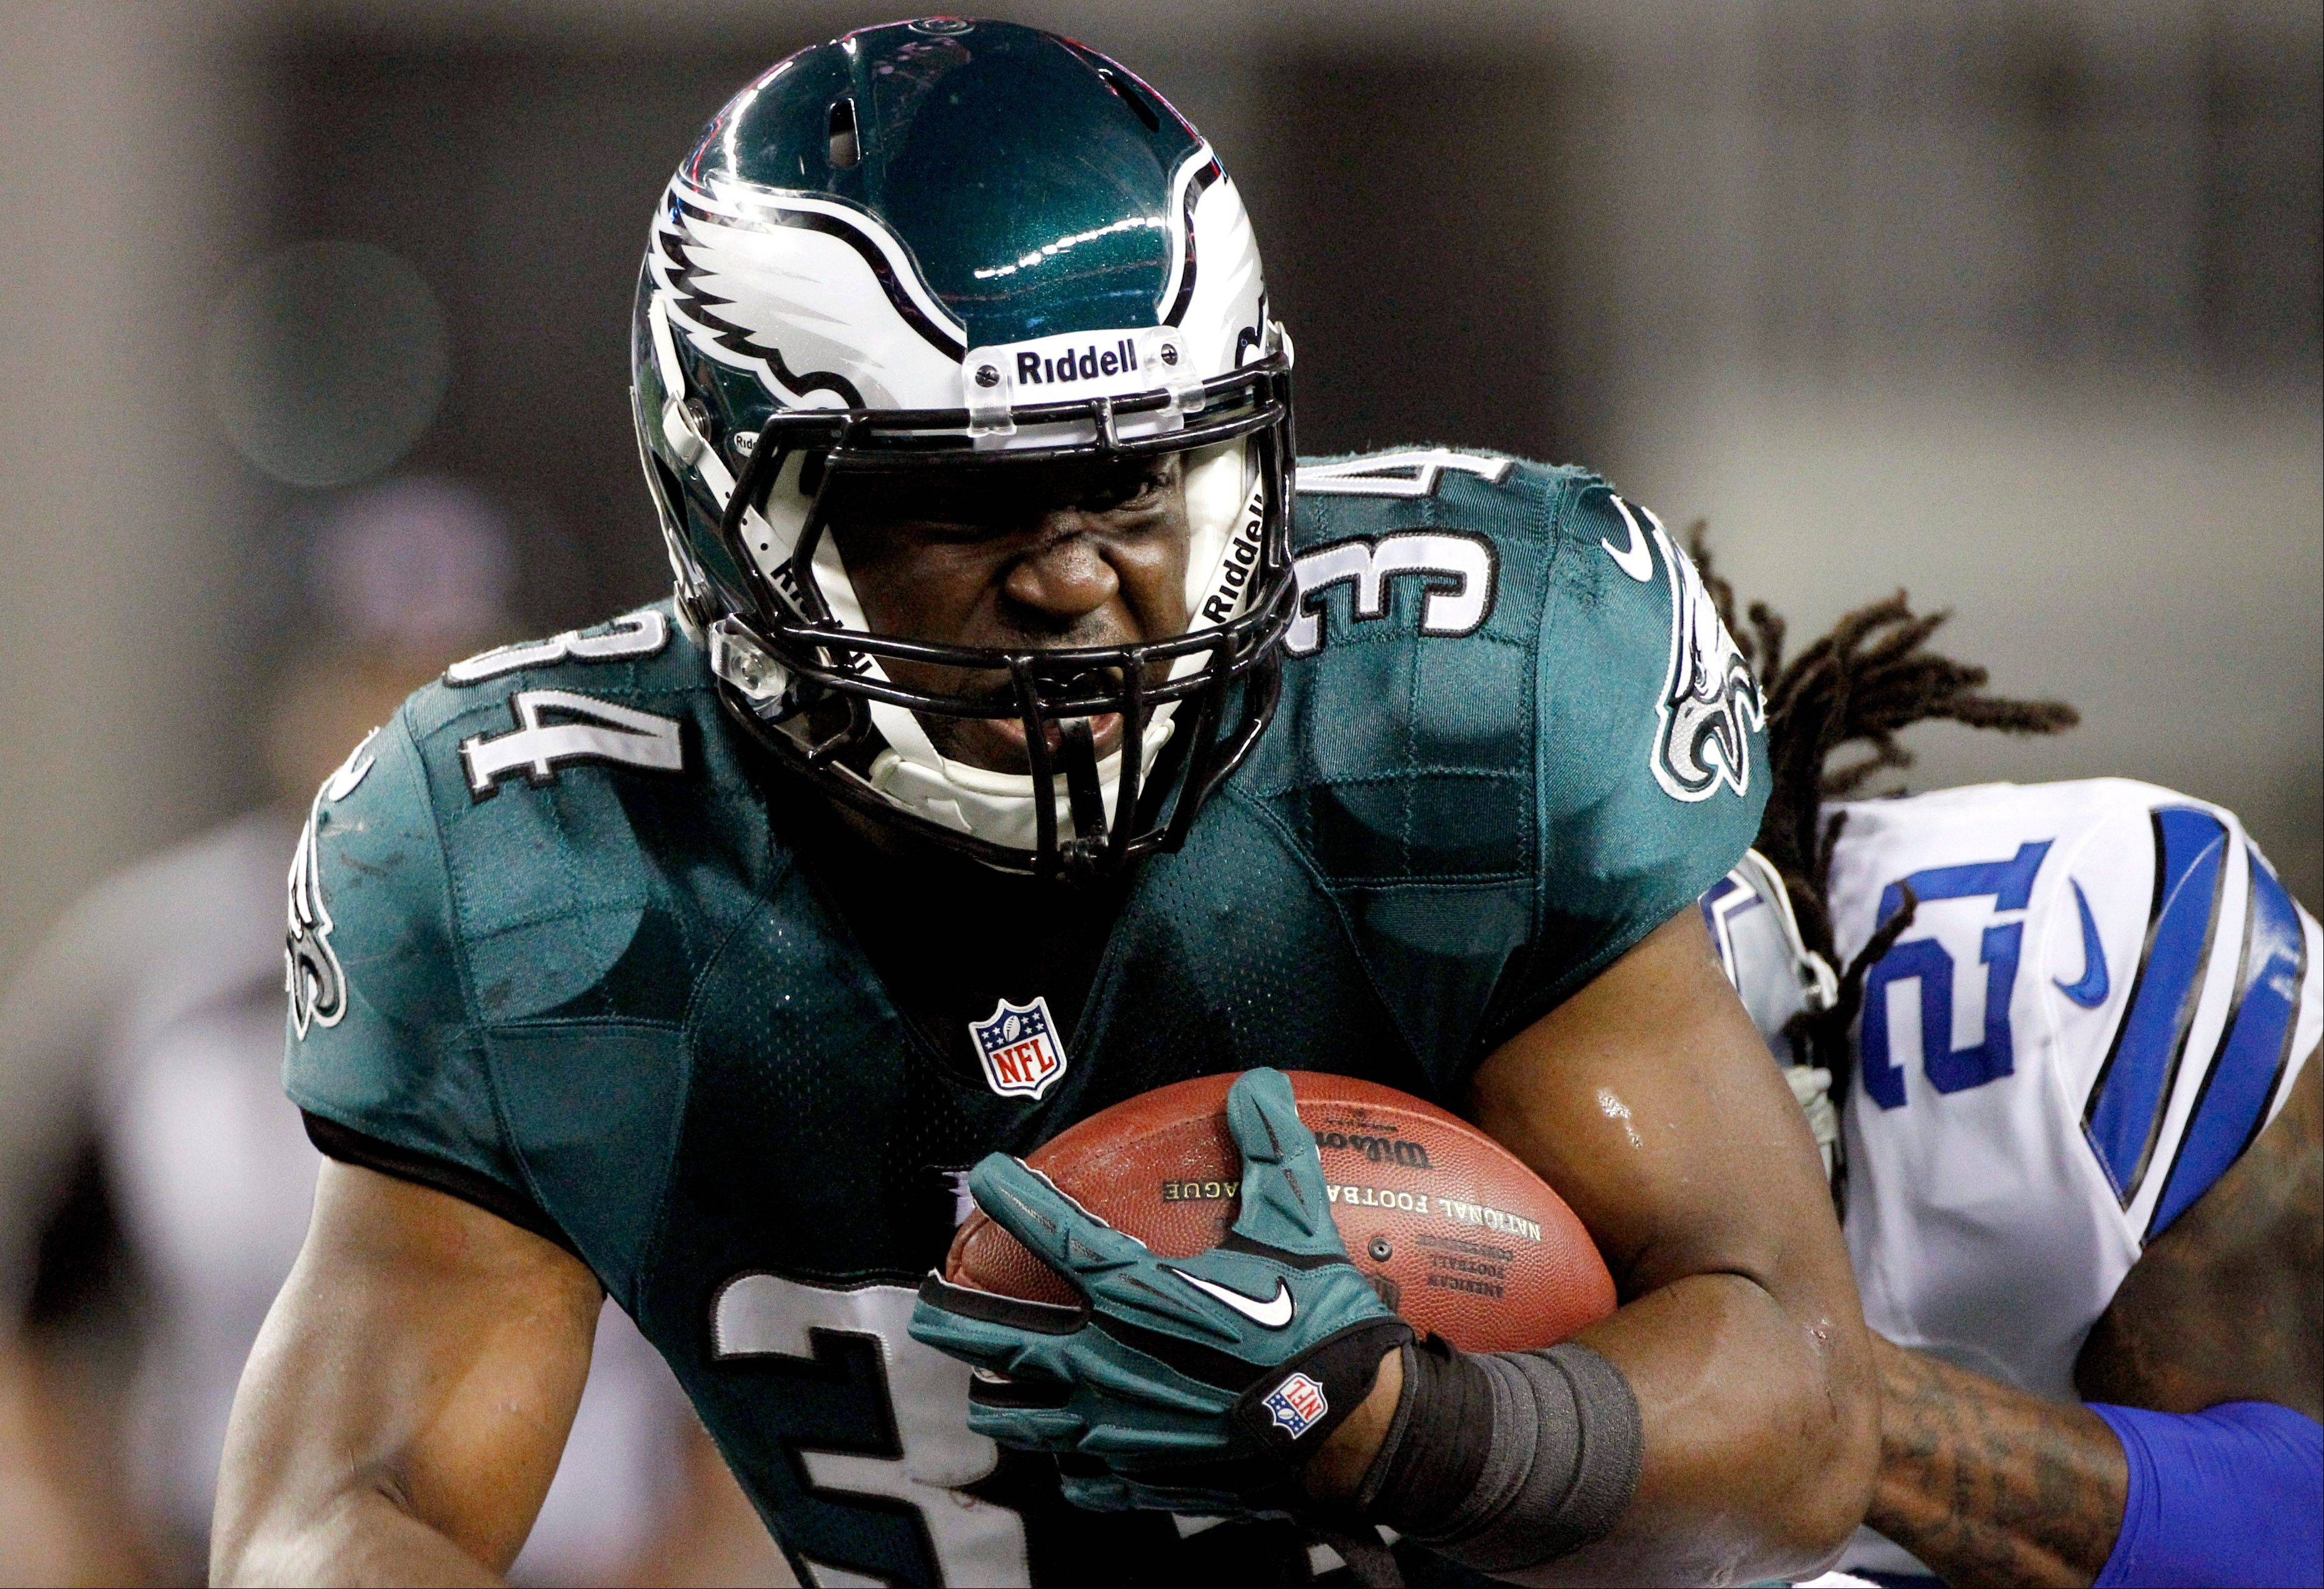 Philadelphia Eagles running back Bryce Brown has been impressive the last two weeks with 4 touchdowns and averaging 8.1 yards per carry. He also has lost three fumbles, however, which could affect his playing time.